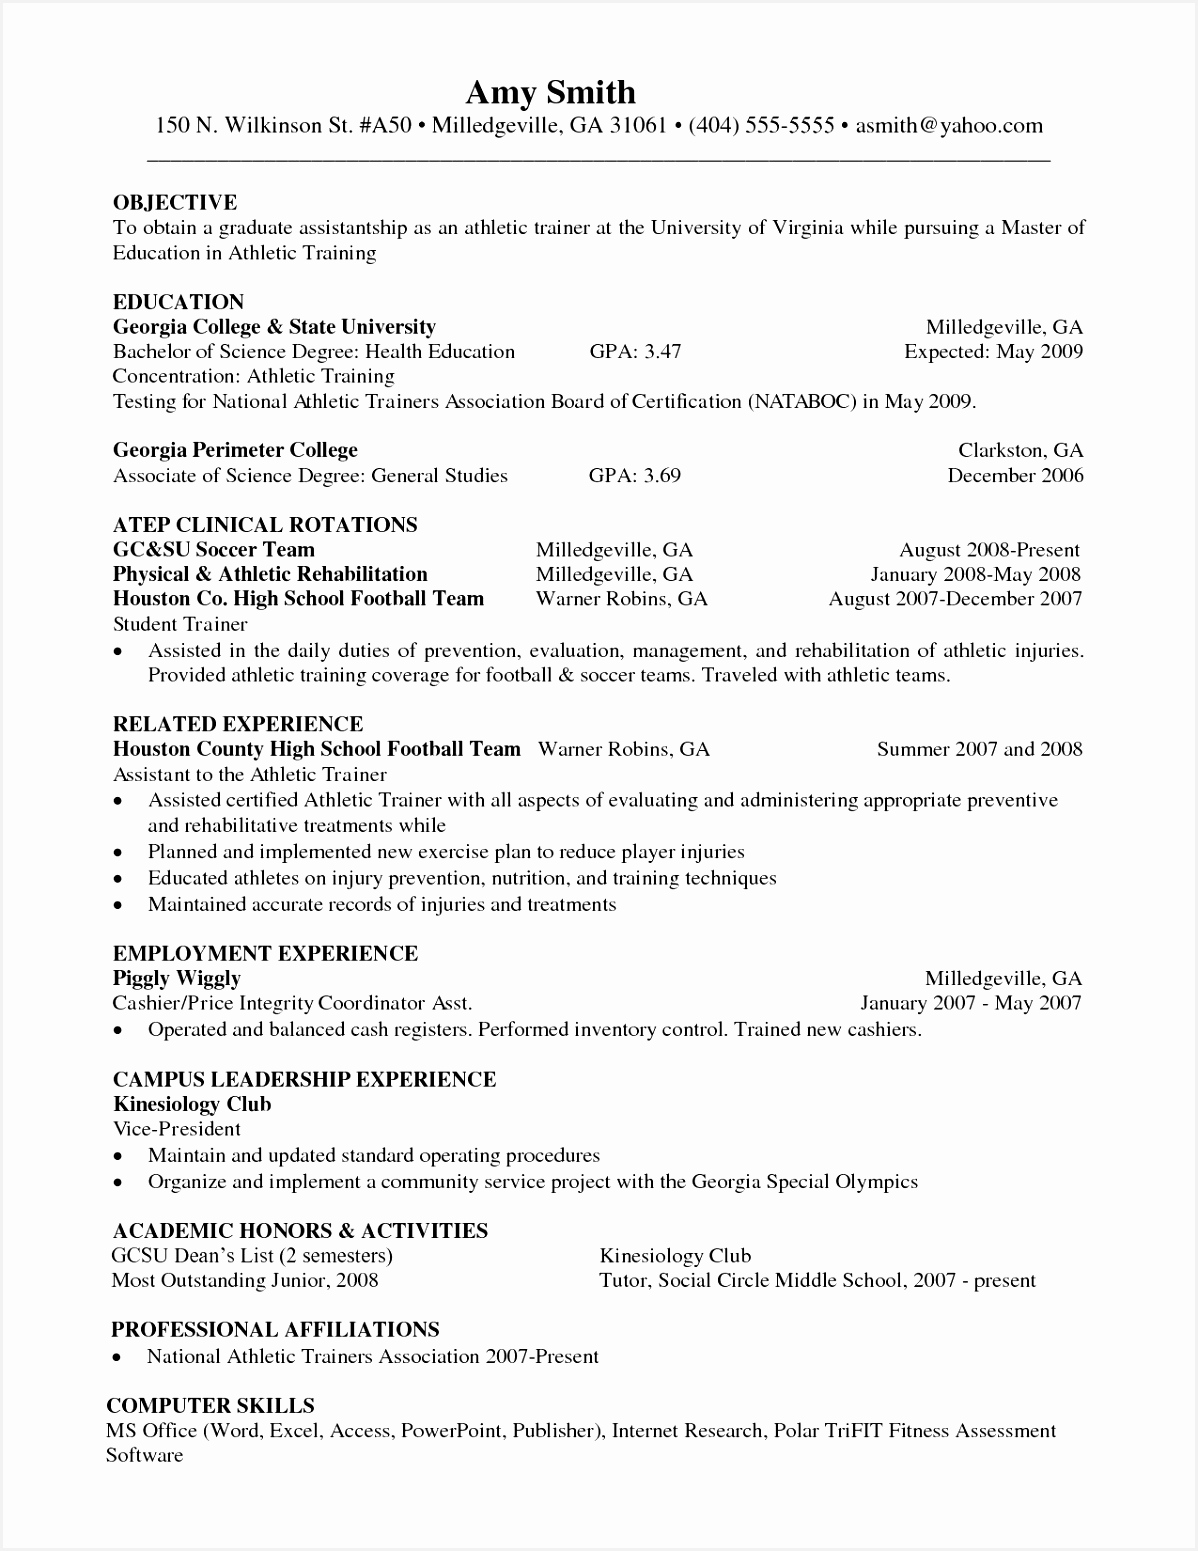 Resumes format for Freshers 3hian Lovely Resume format for Internship Engineering Elegant Luxury Grapher Of Resumes format for Freshers 3hian Lovely Resume format for Internship Engineering Elegant Luxury Grapher